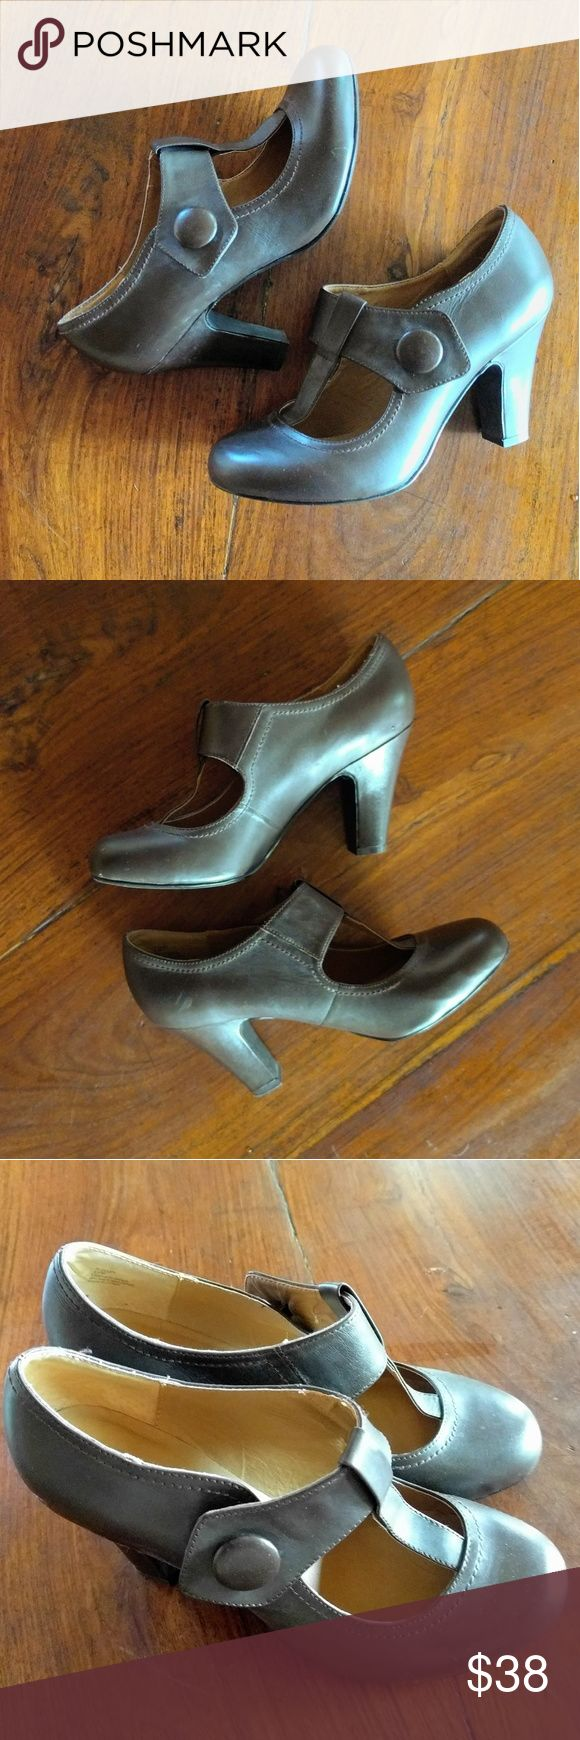 Steve Madden Heel Booties These are great for work, closed toe. Gently worn, some very minor scuffs. Genuine leather. Steve Madden Shoes Heels